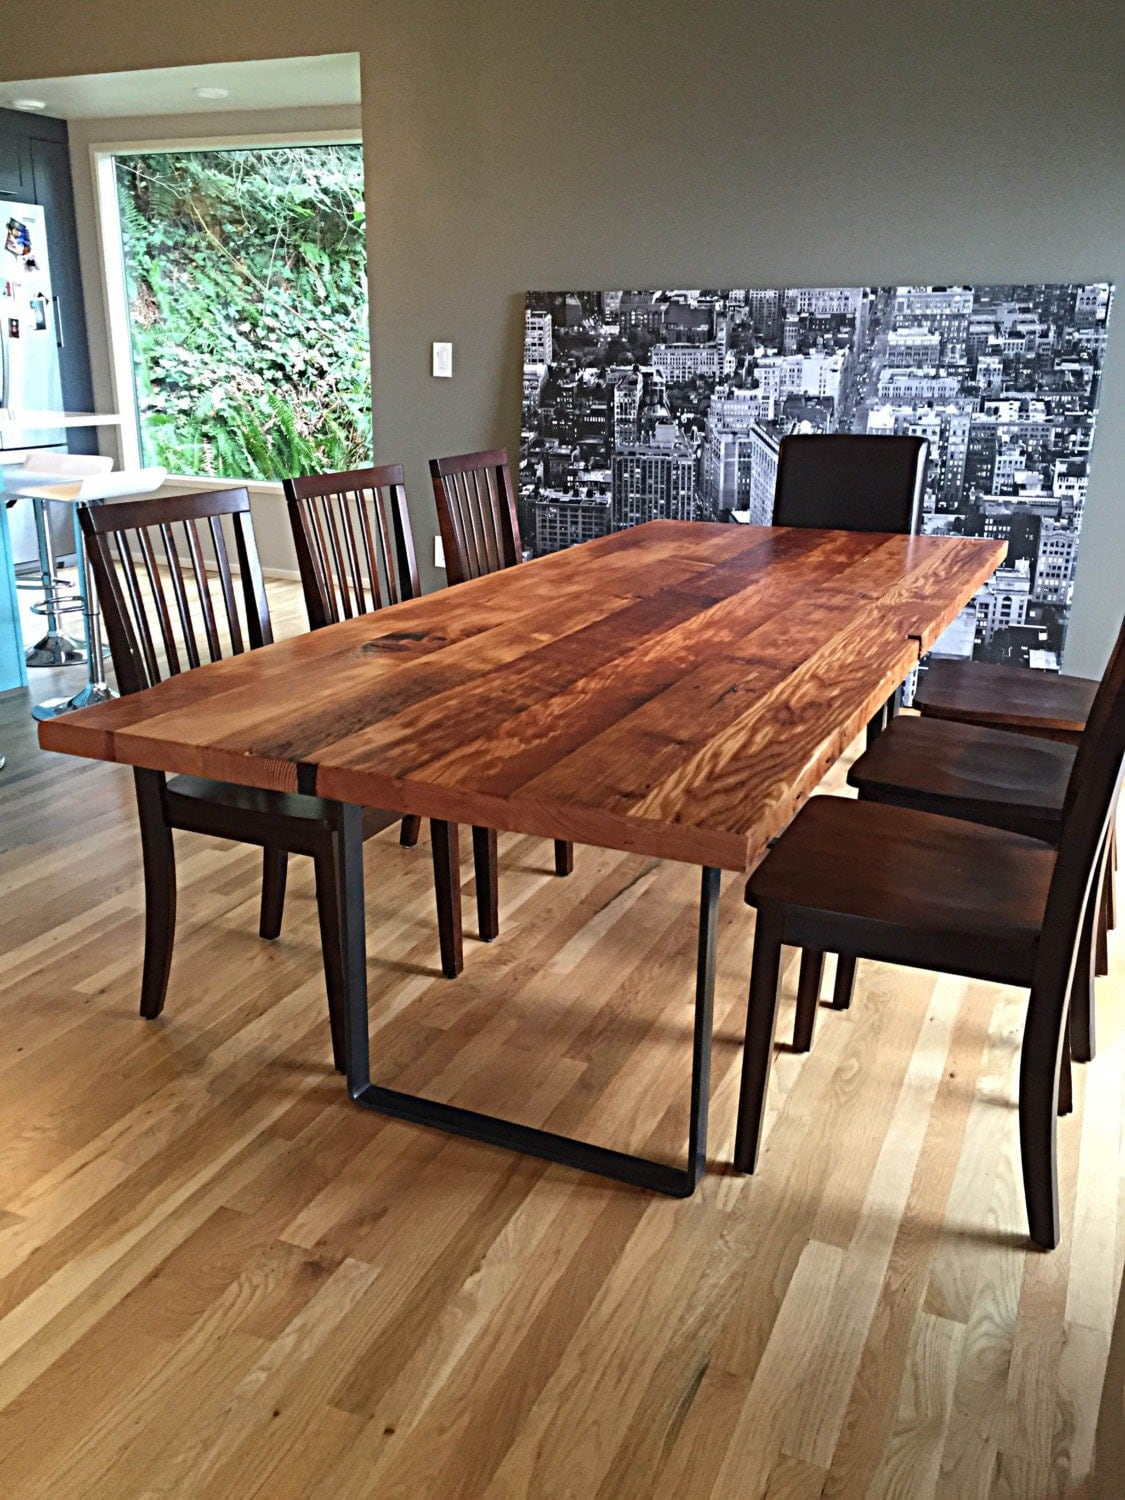 Reclaimed wood table Reclaimed furniture portland